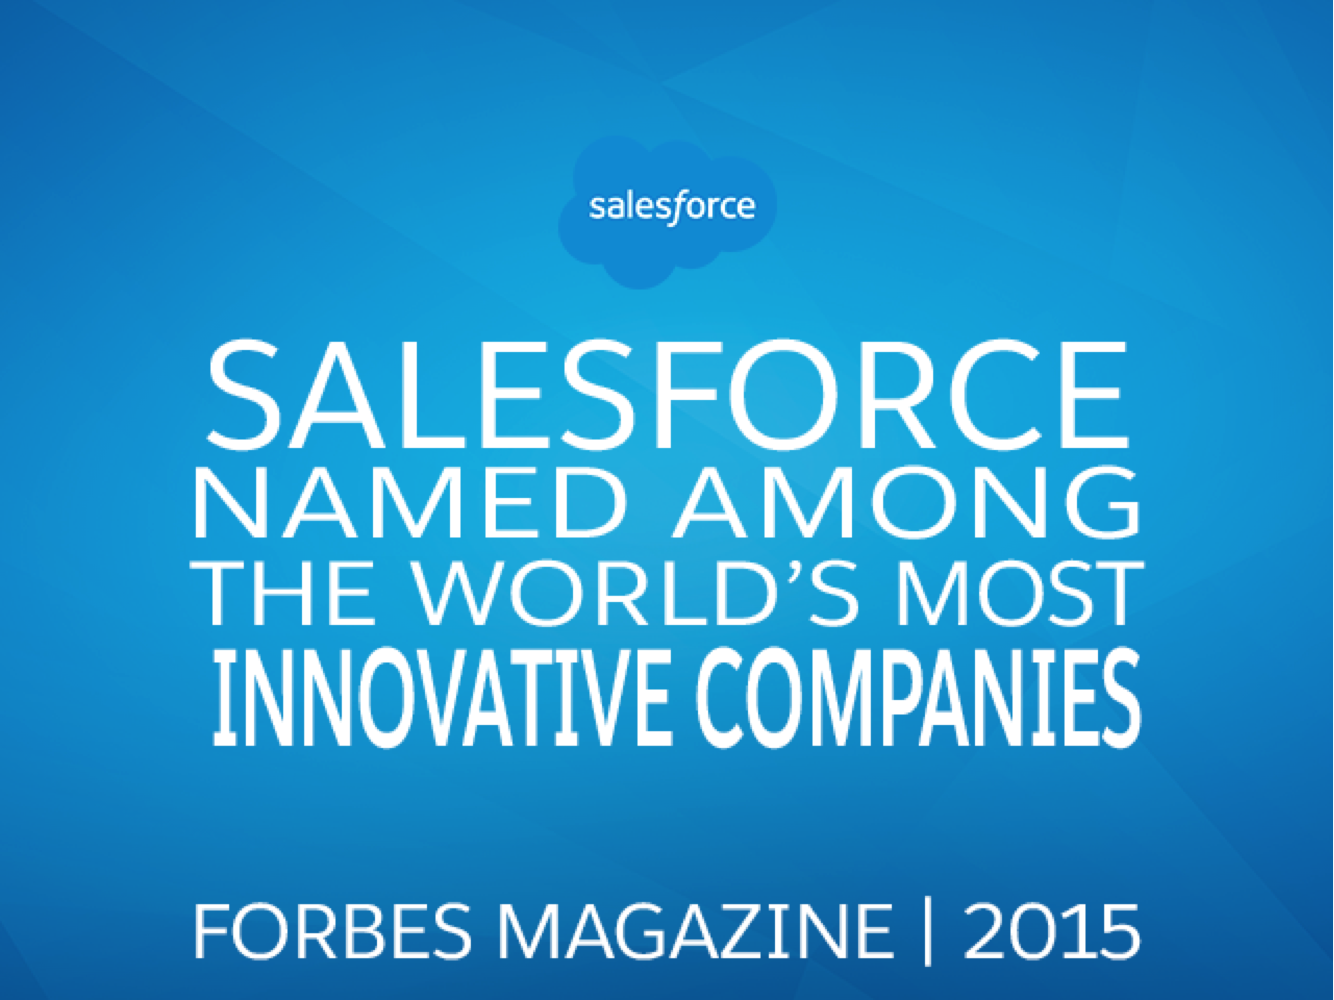 Forbes Named Salesforce One of the World's Most Innovative Companies for the Fifth Year in a Row